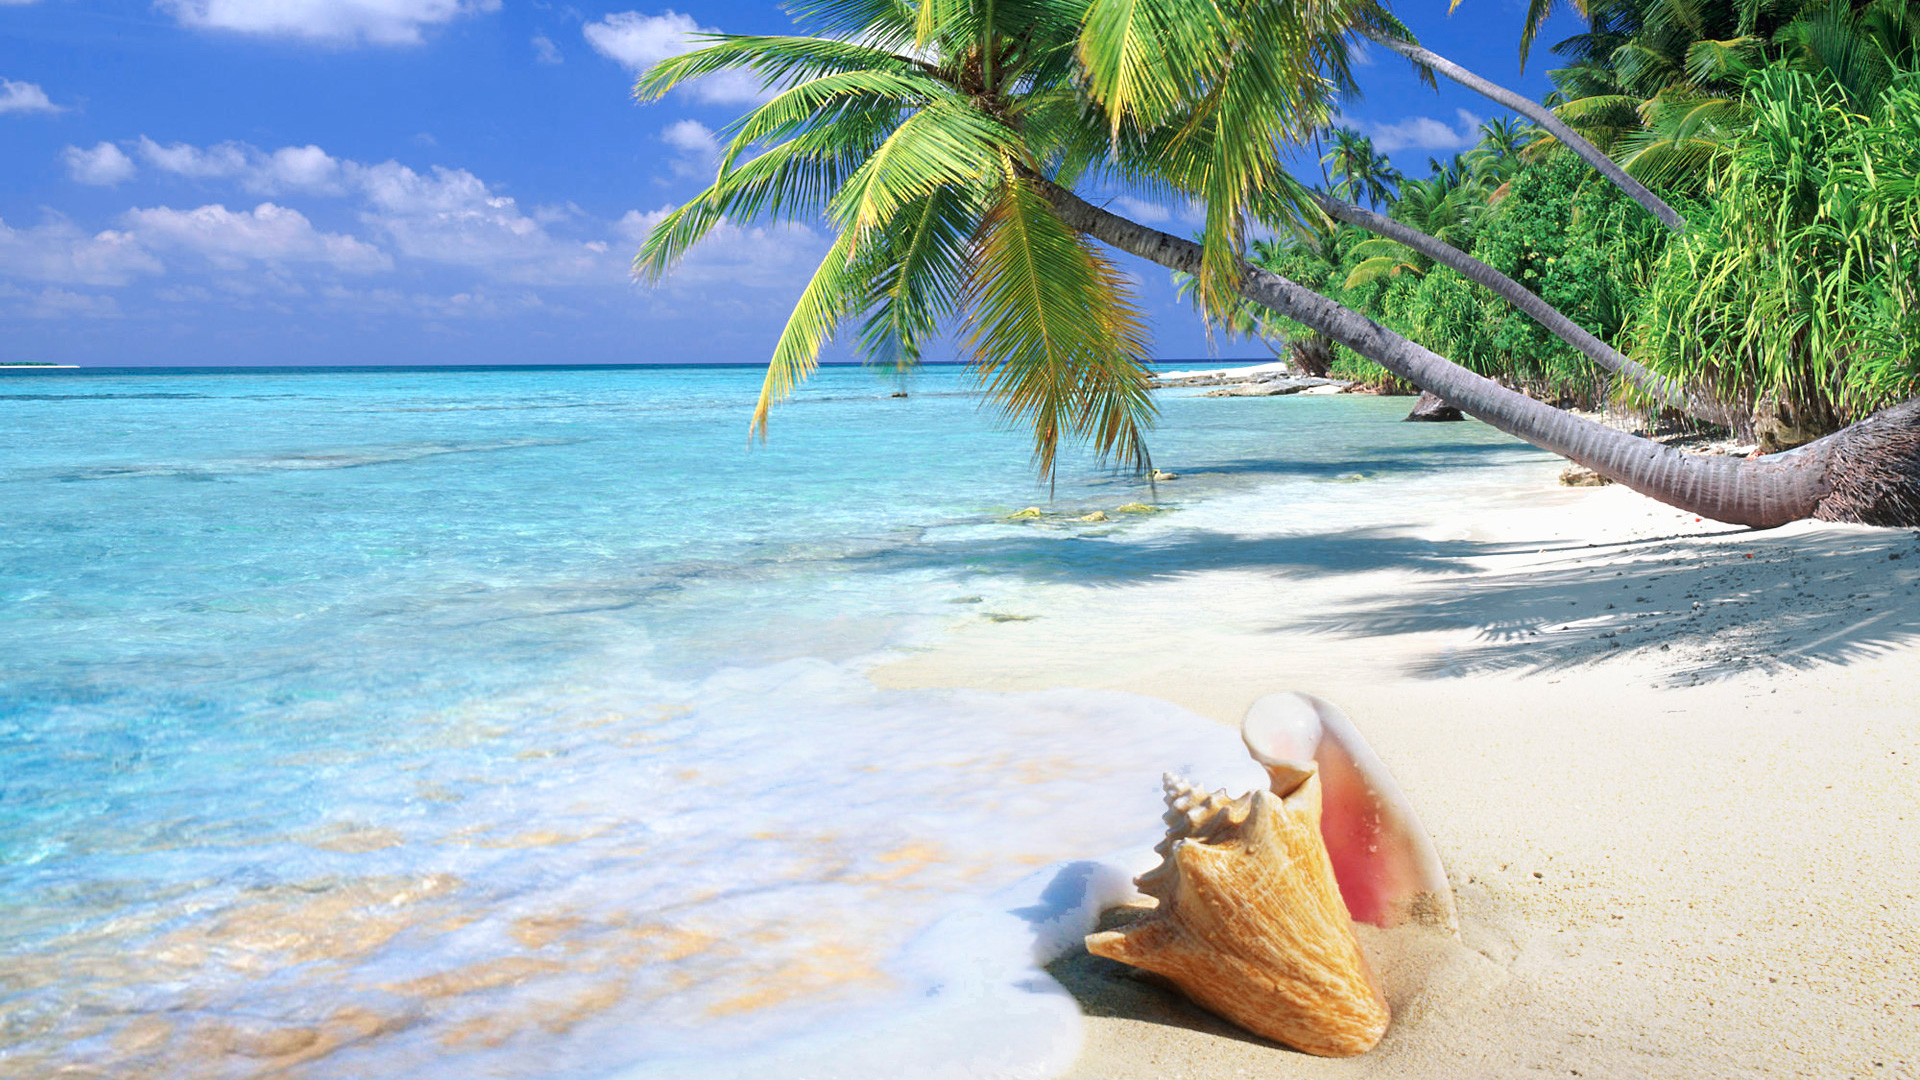 hd wallpaper tropical beach shell wallpapers55com   Best Wallpapers 1920x1080